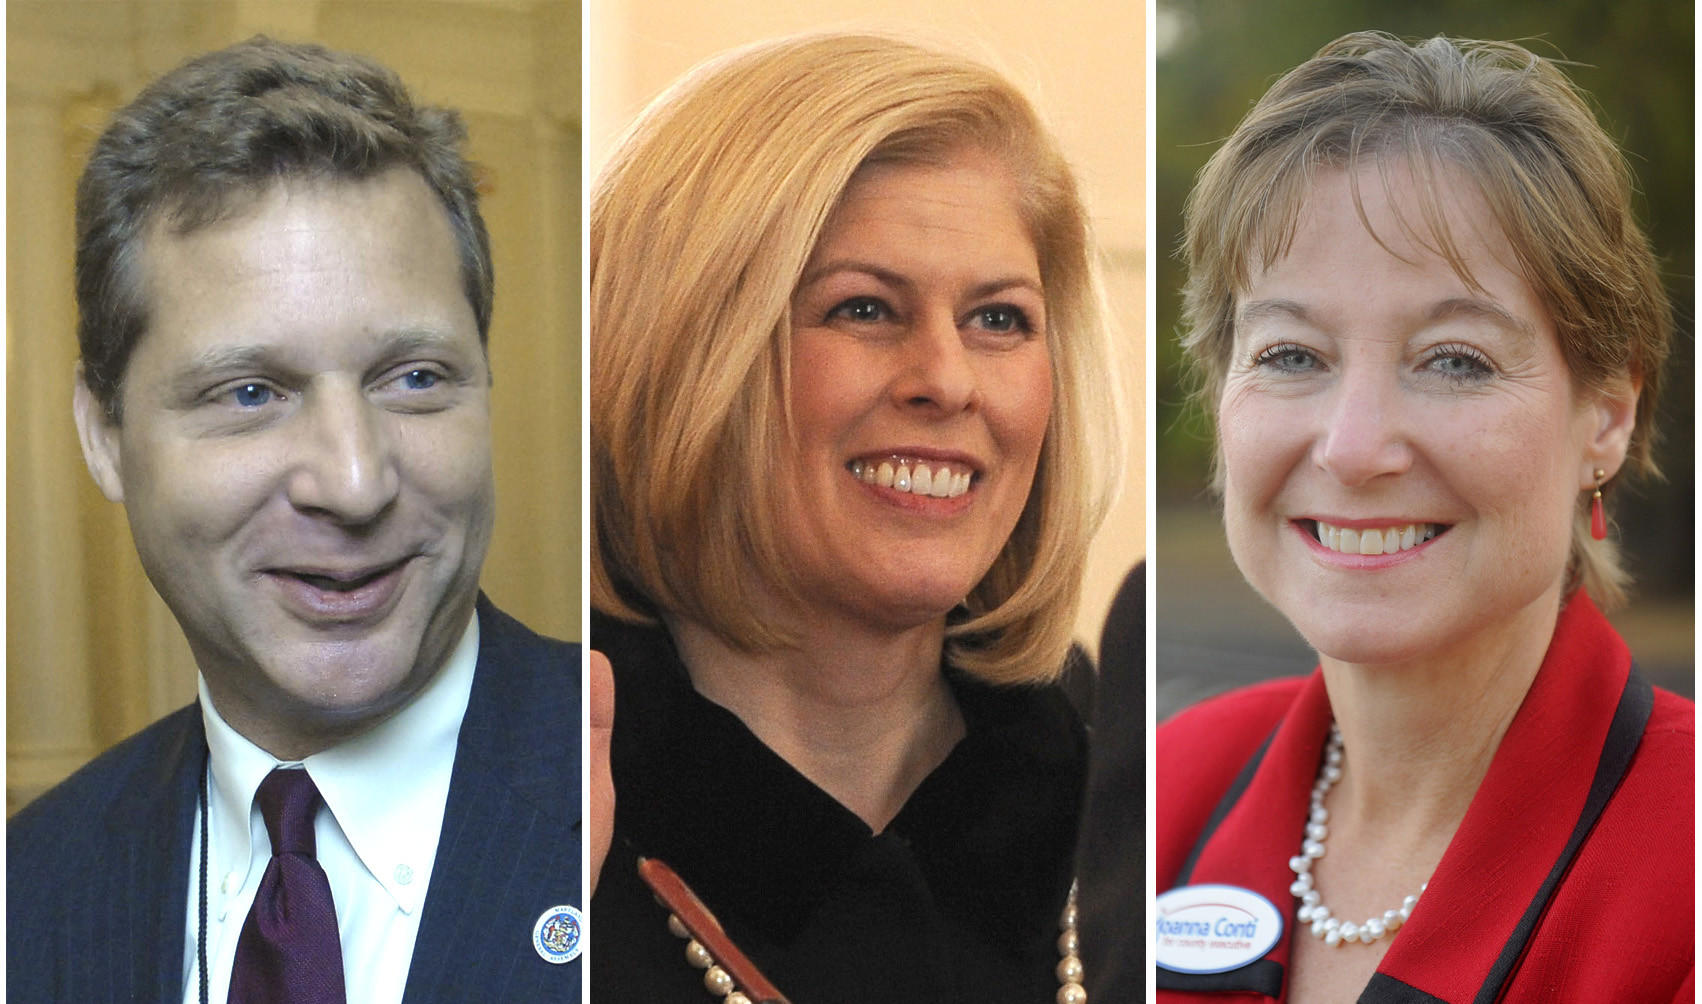 State Del. Steve Schuh and incumbent County Executive Laura Neuman, center, are vying in the GOP primary for county executive, while Joanna Conti, right, is the lone Democrat running for the office thus far.